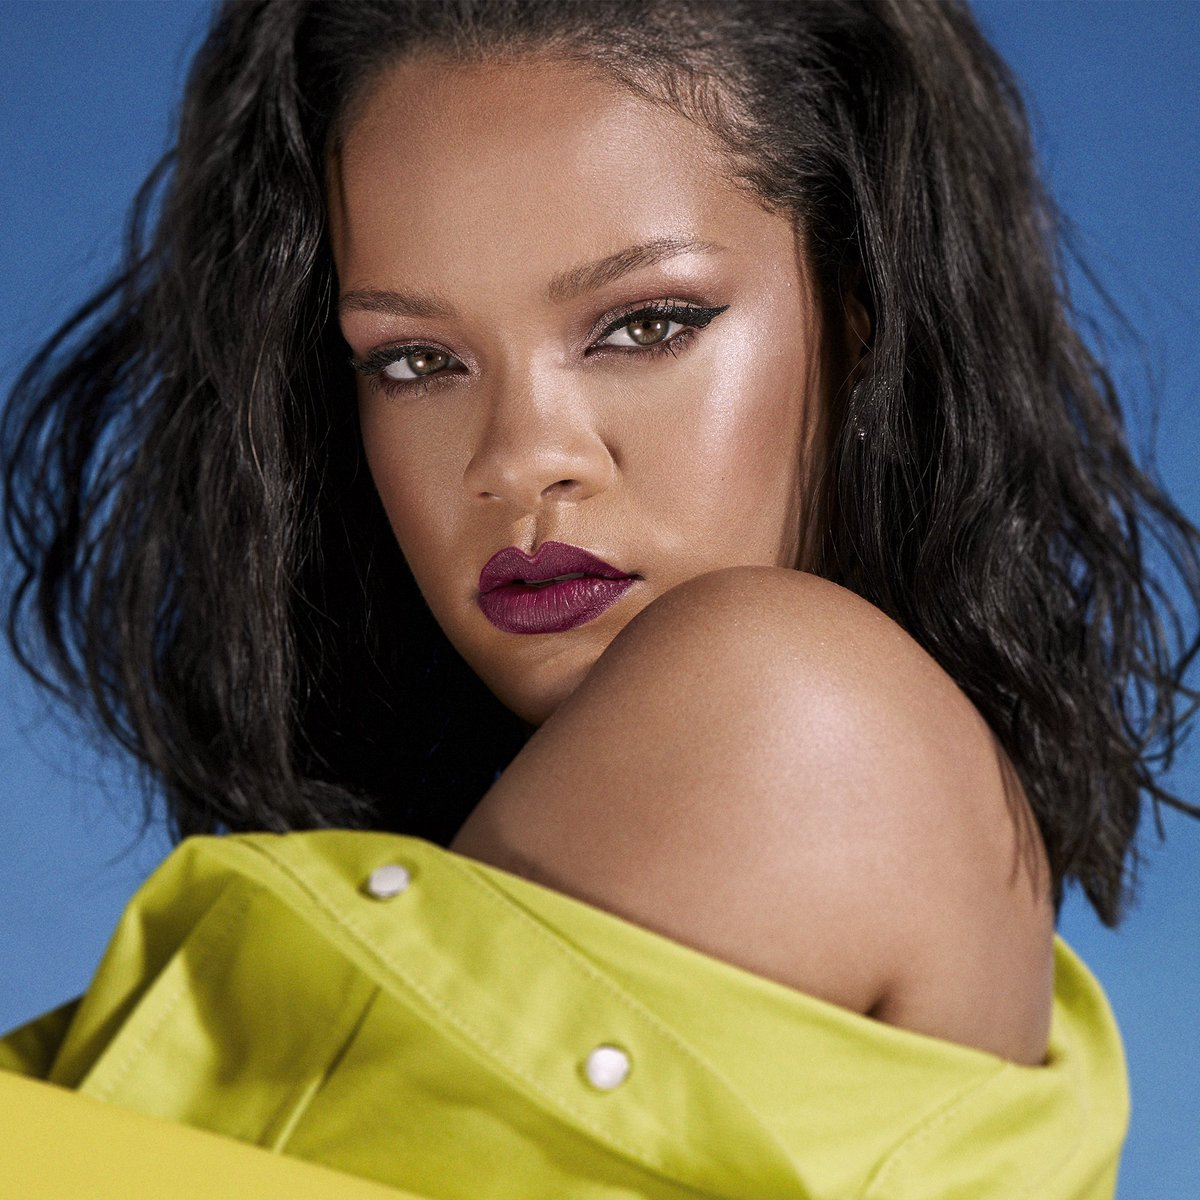 When I launched @fentybeauty  in 2017, it was important to me to make sure it was available globally so everyone had access to it. And now we are continuing to expand our Fenty Beauty family to Hong Kong, Macau, Seoul and Jeju in September!